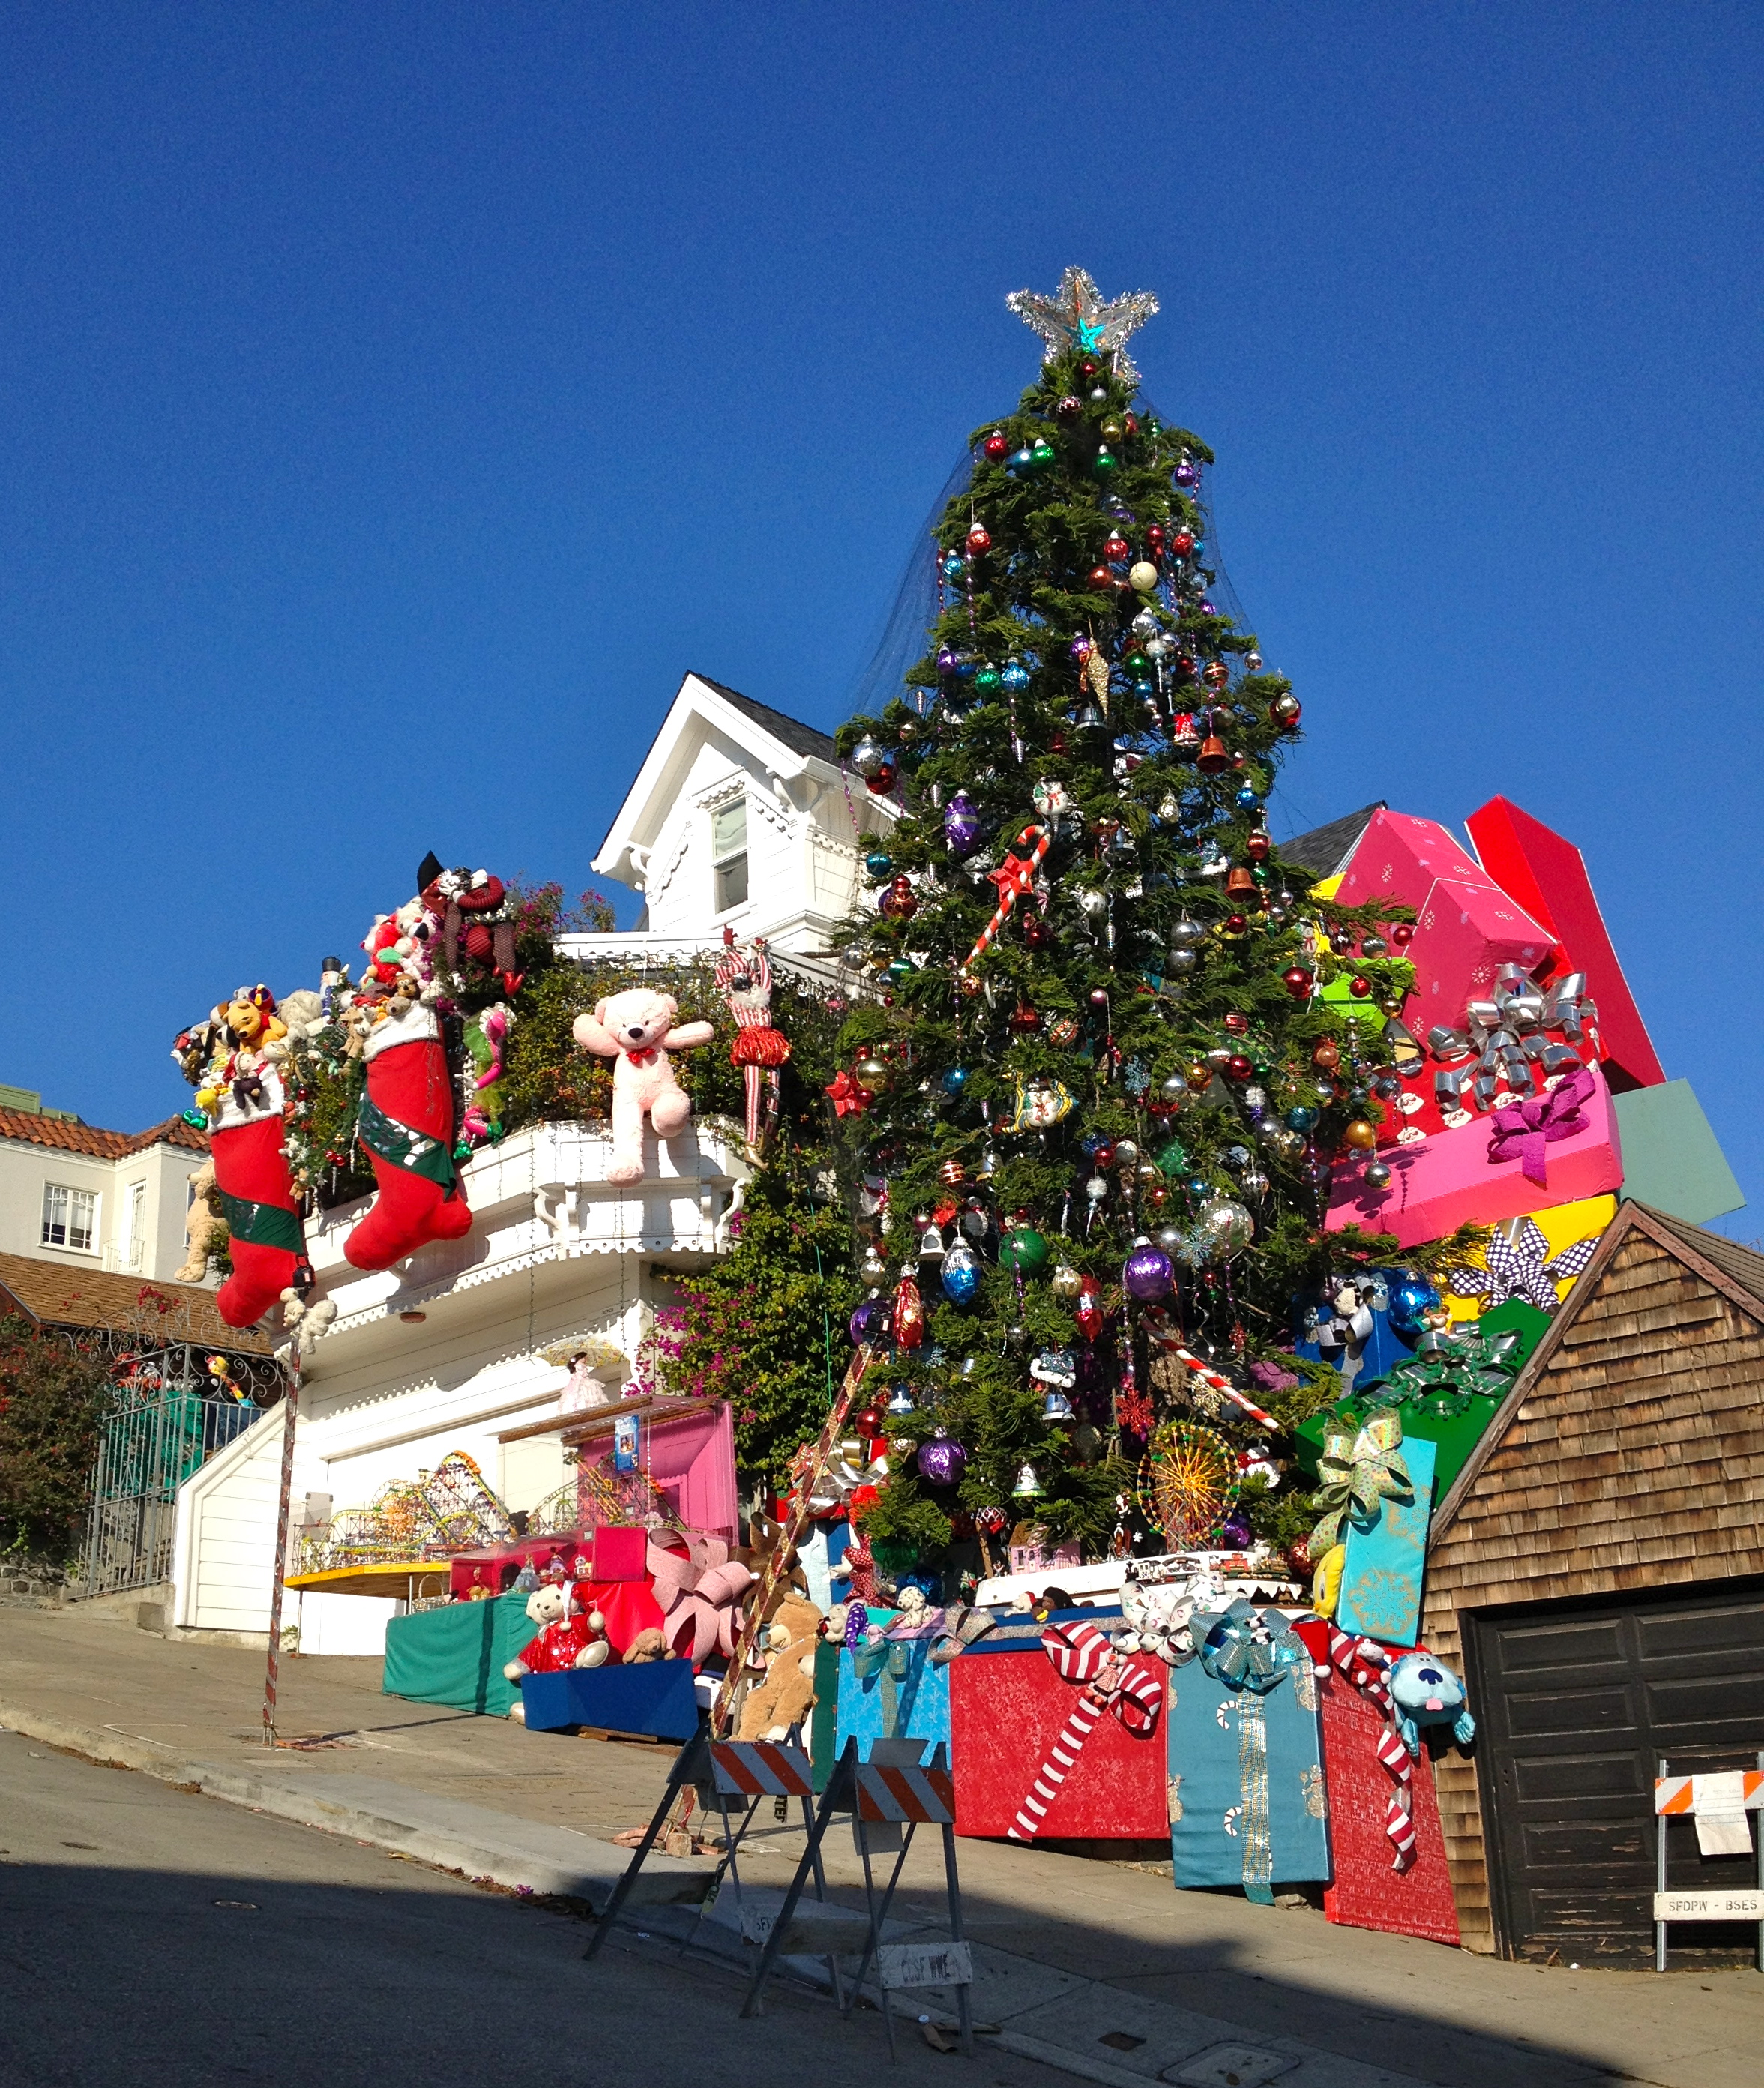 Christmas Decorated House San Francisco : Beating the winter blues sunshinesunday new york clich?